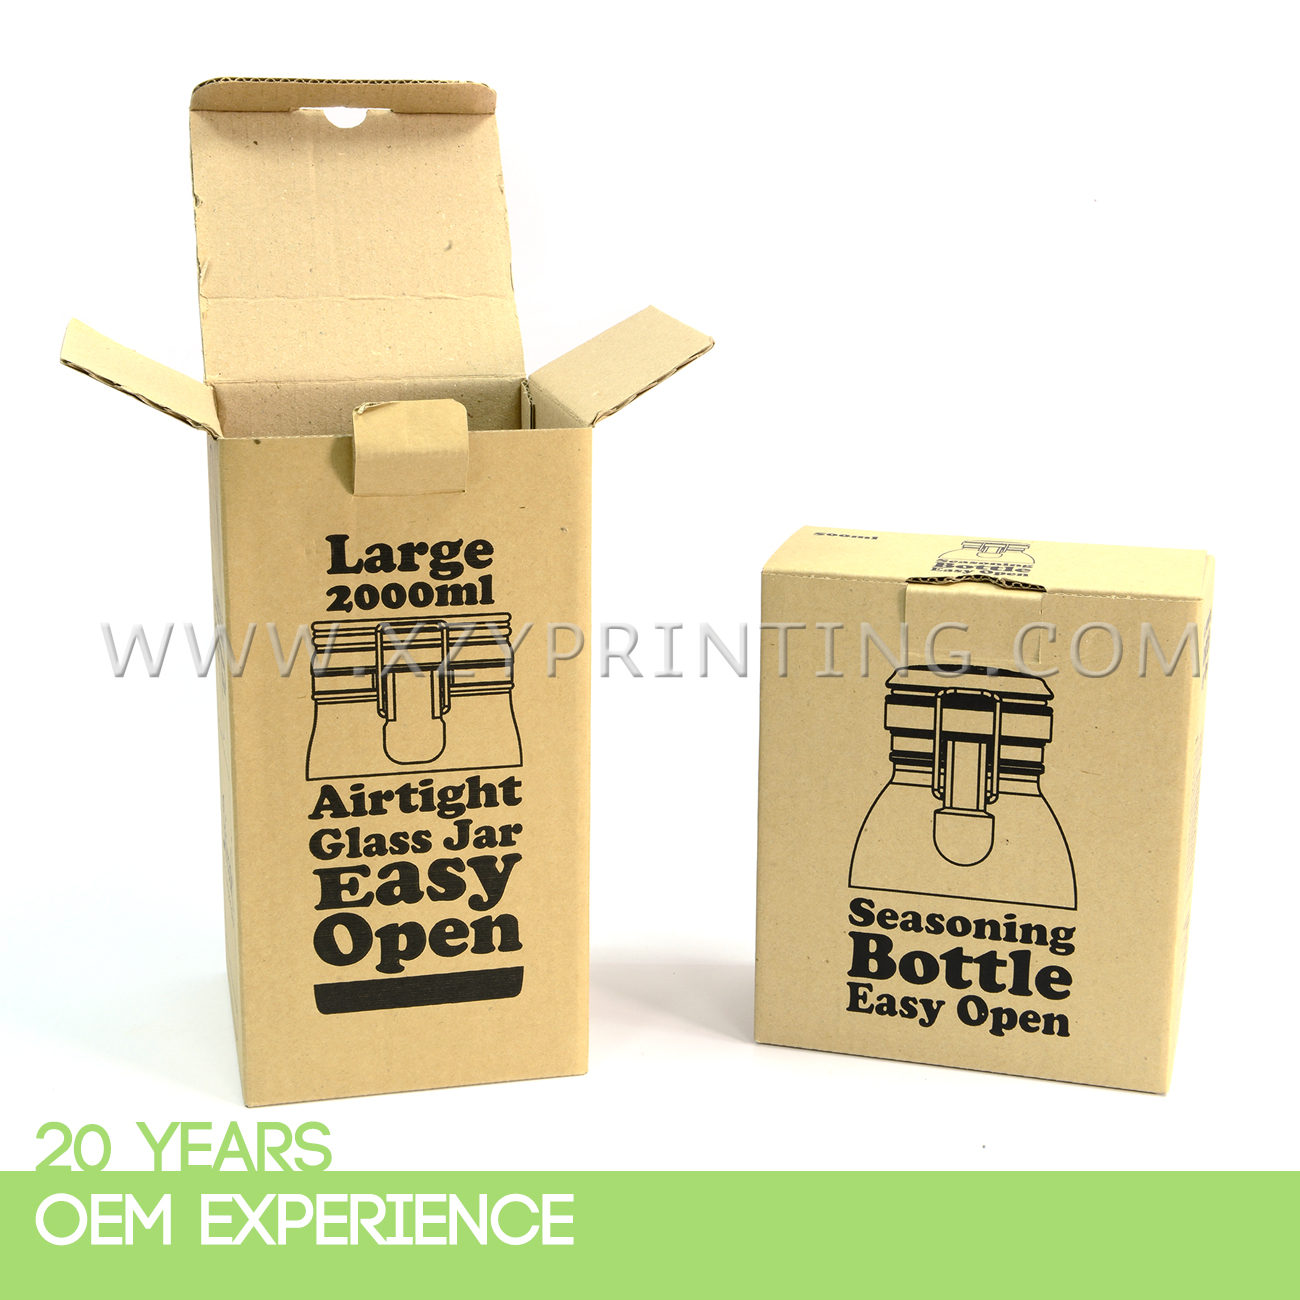 OEM recycle environment-friendly carton Box